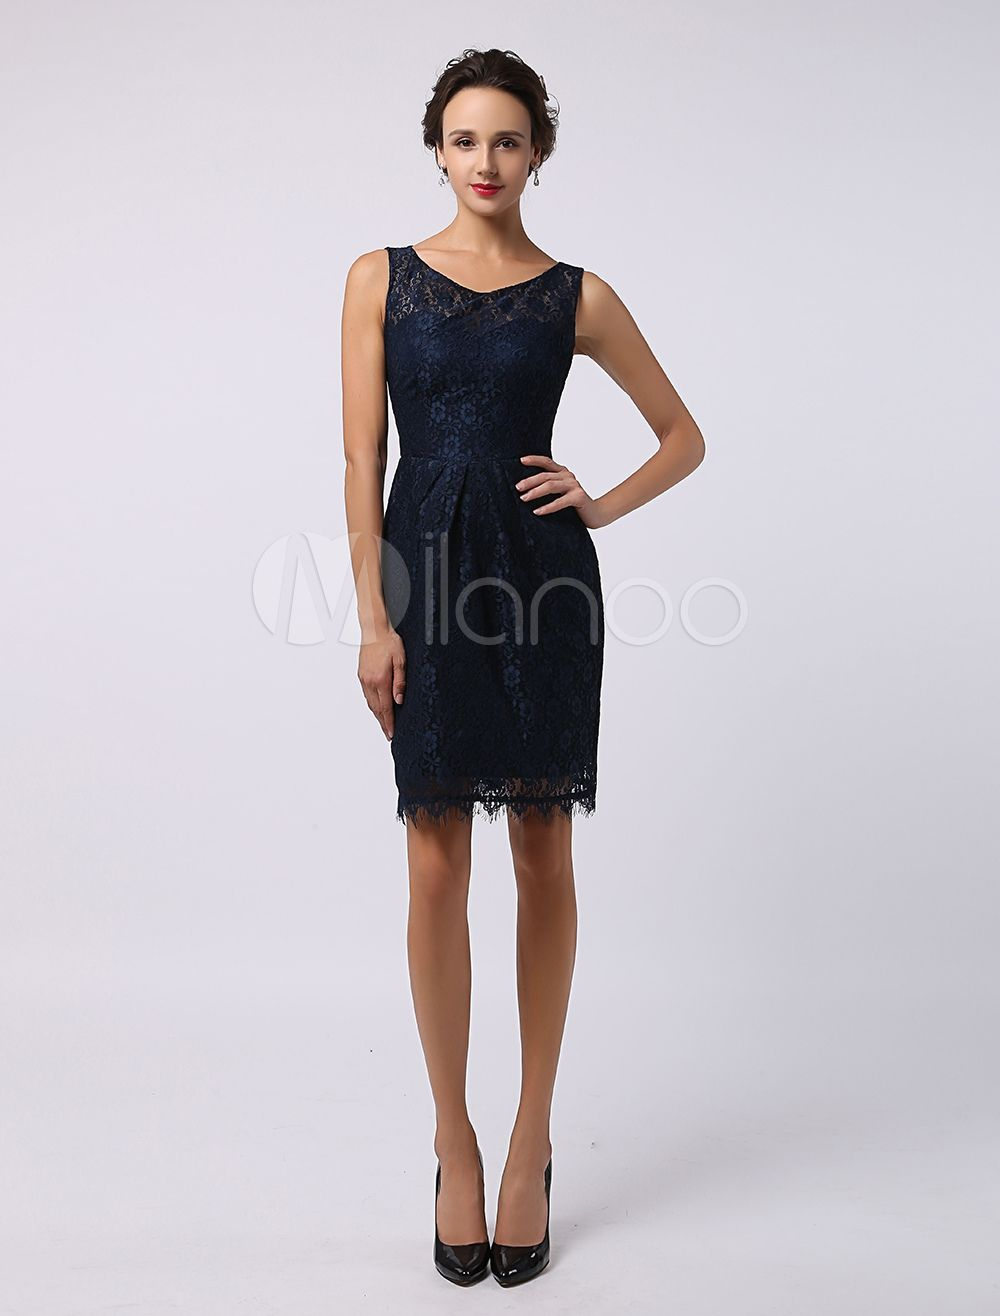 sweetheart knee-length lace bridesmaid dress wedding guest